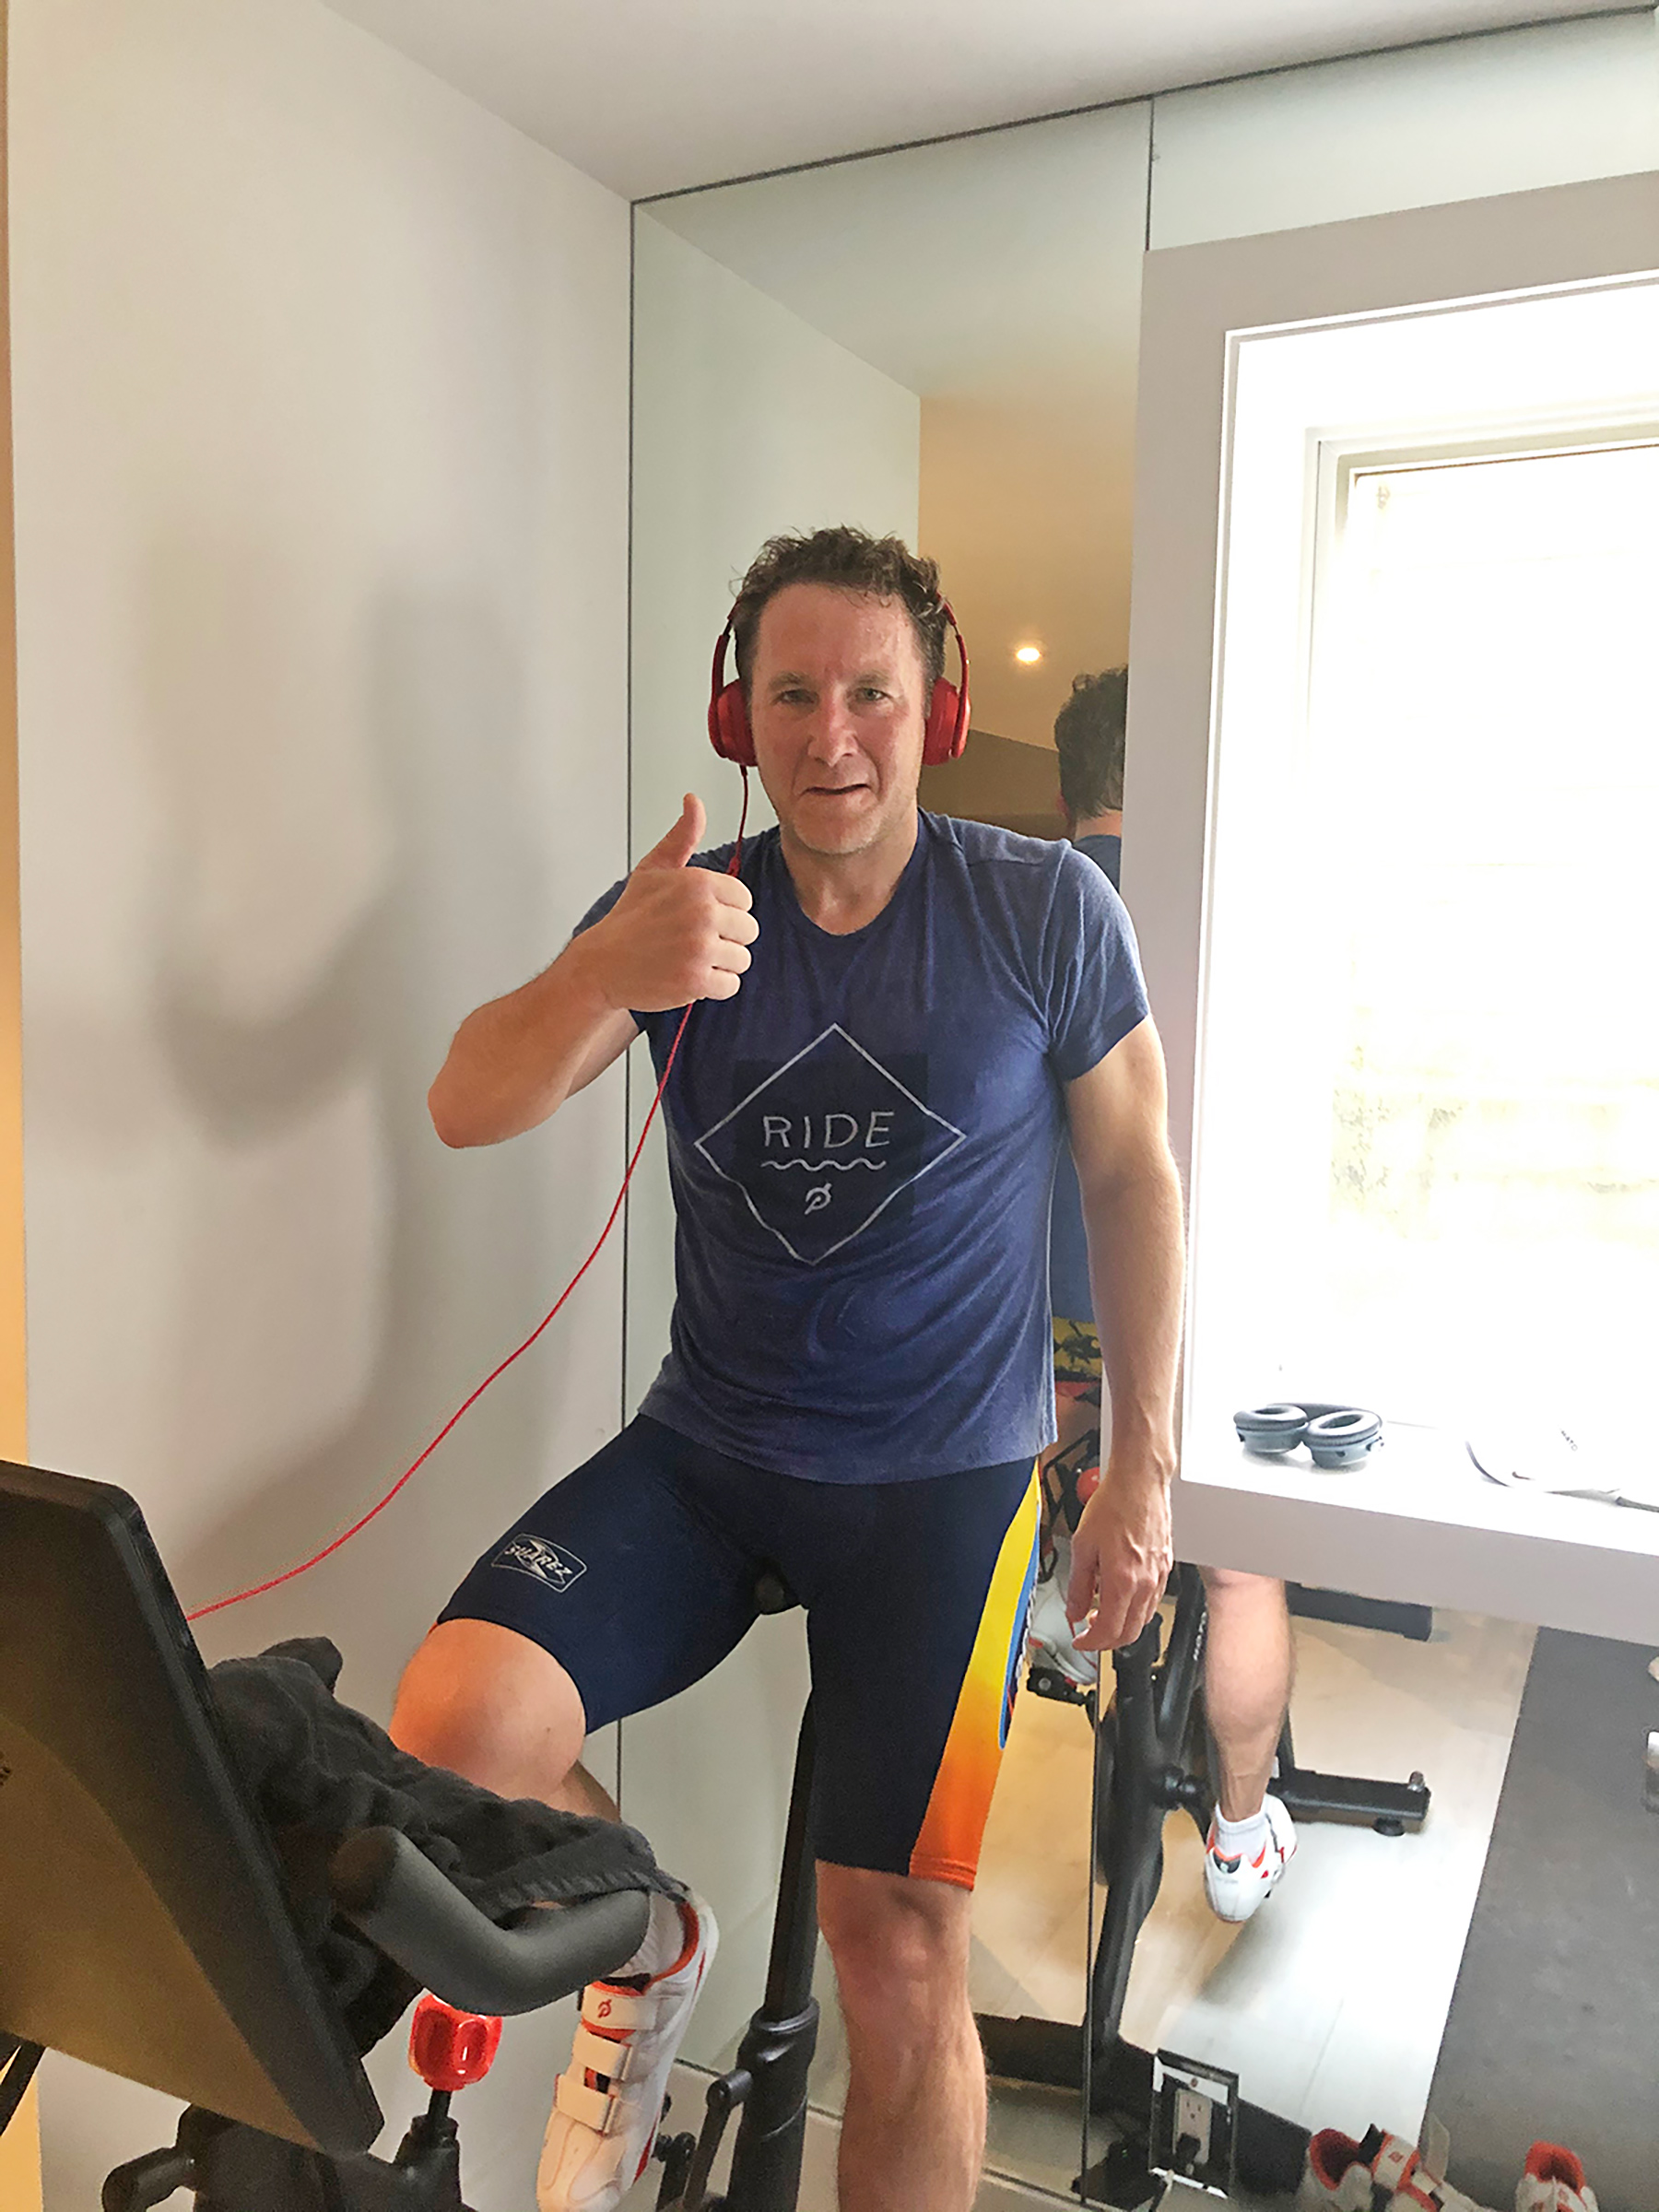 Peloton CEO John Foley at his New York City area home in May